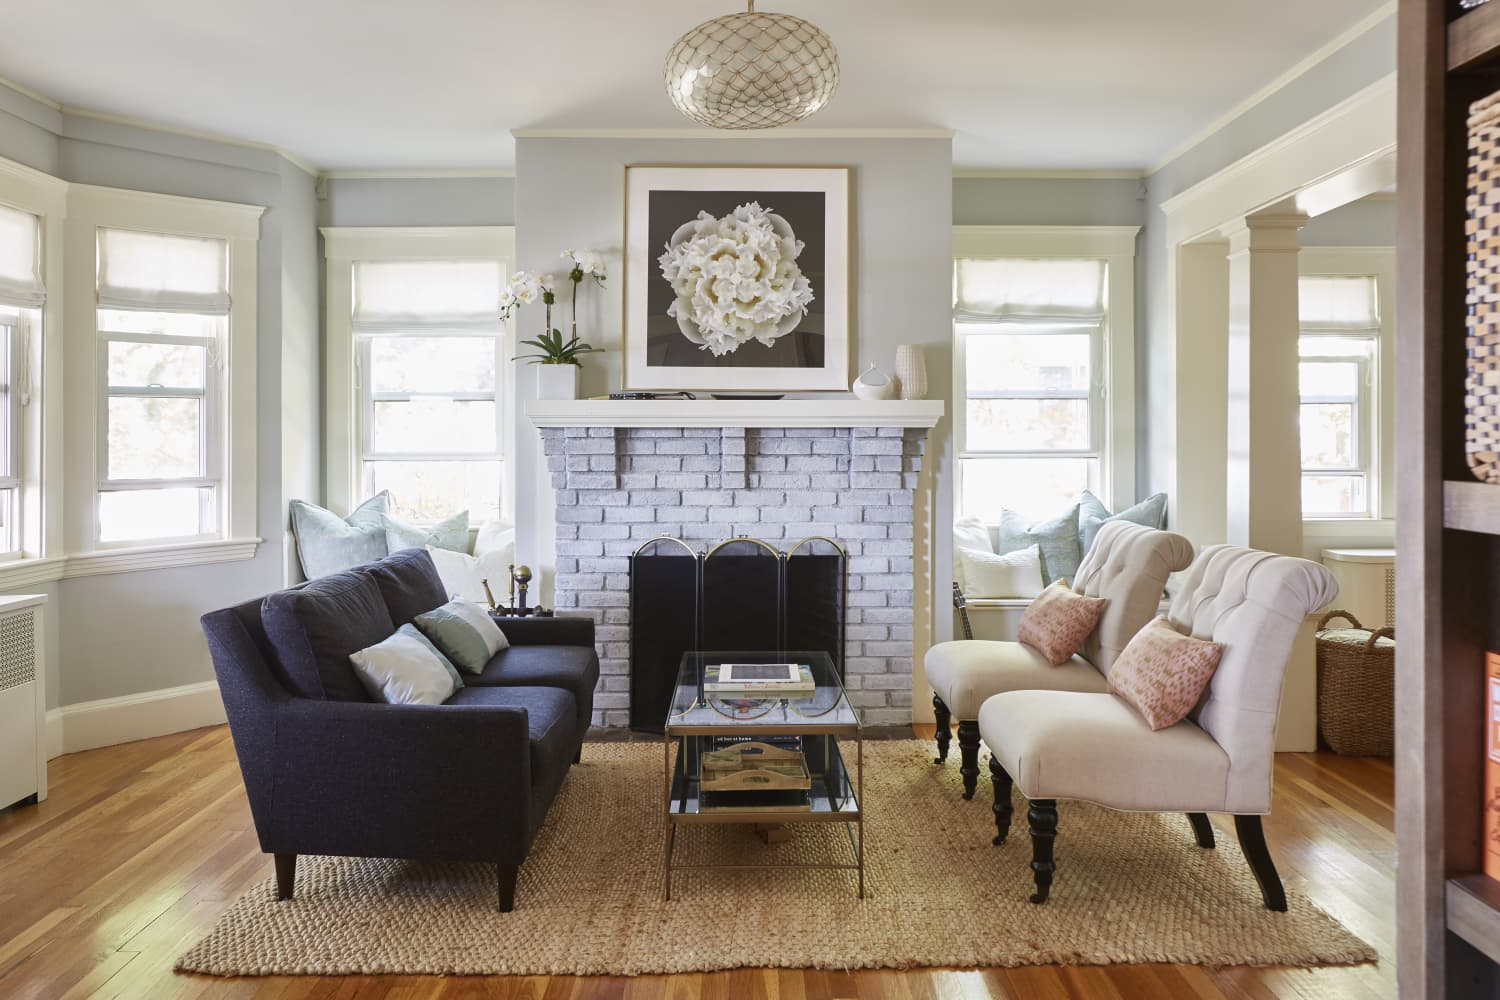 10 of the Most Incredible Total Home Transformations We've Seen This Year